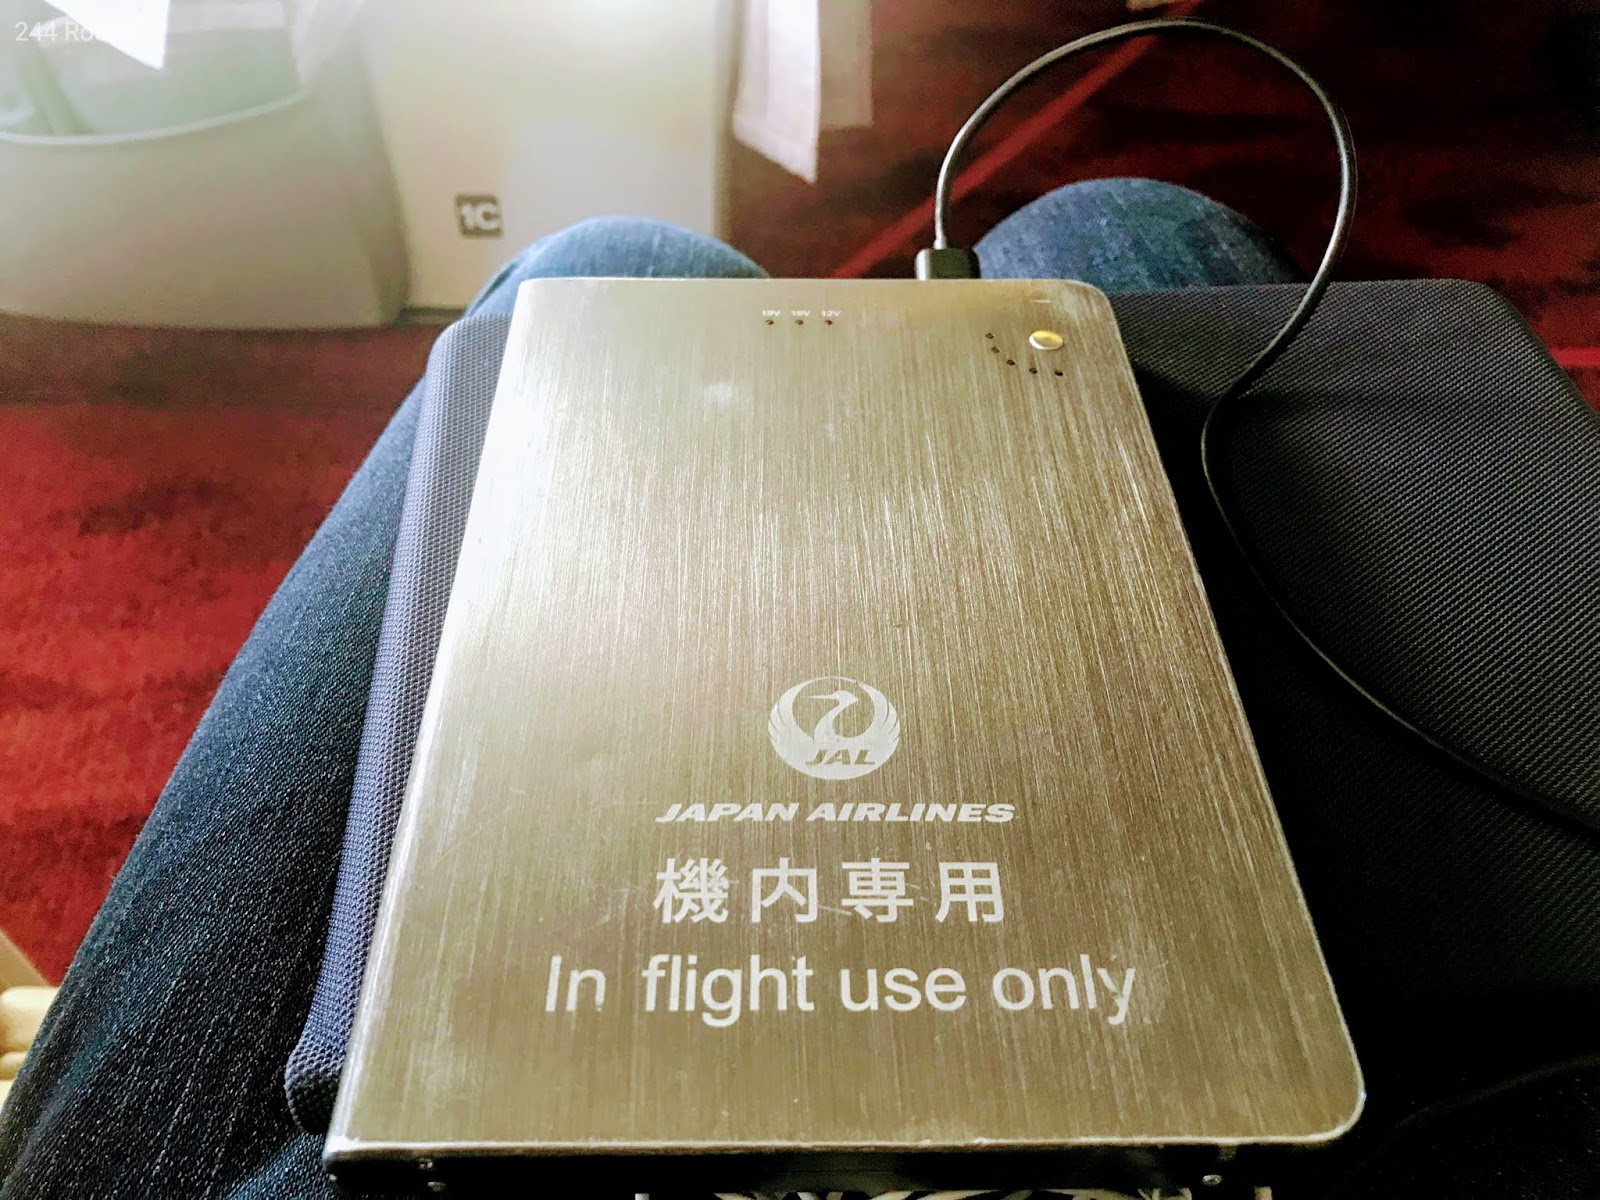 jal-domestic-firstclass-battery